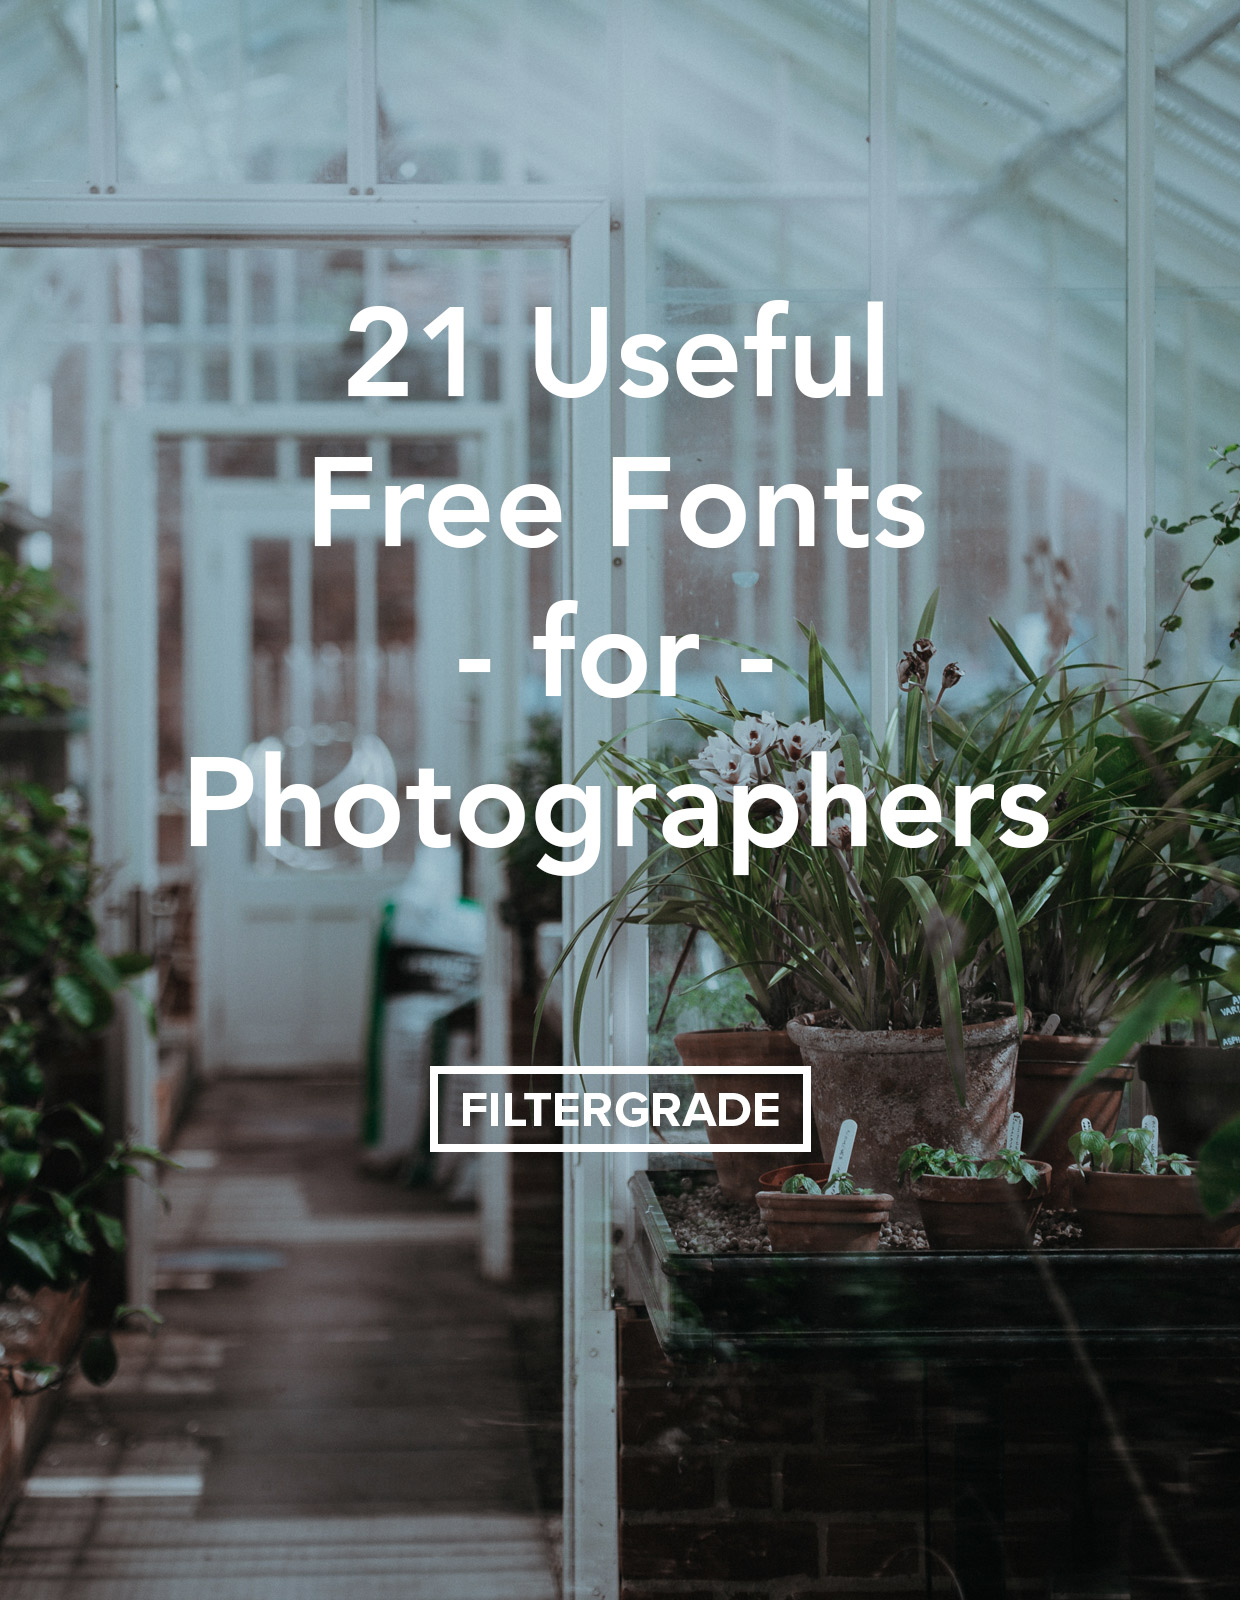 21 Useful Free Fonts for Photographers - FilterGrade